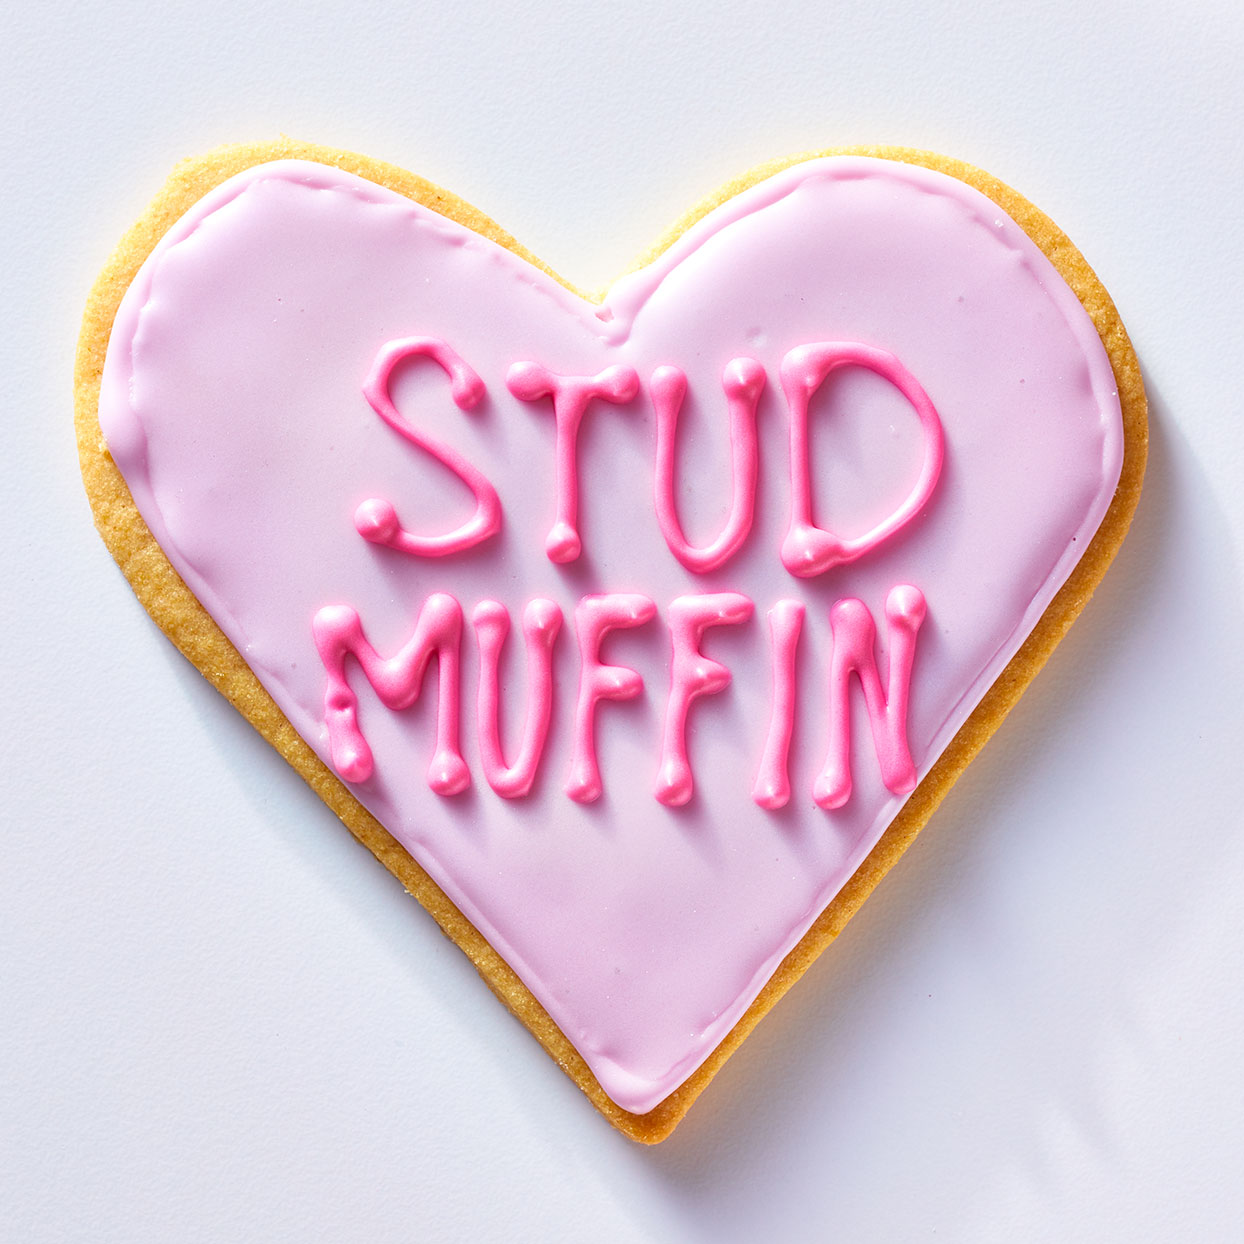 Stud Muffin Conversation Heart Cookie